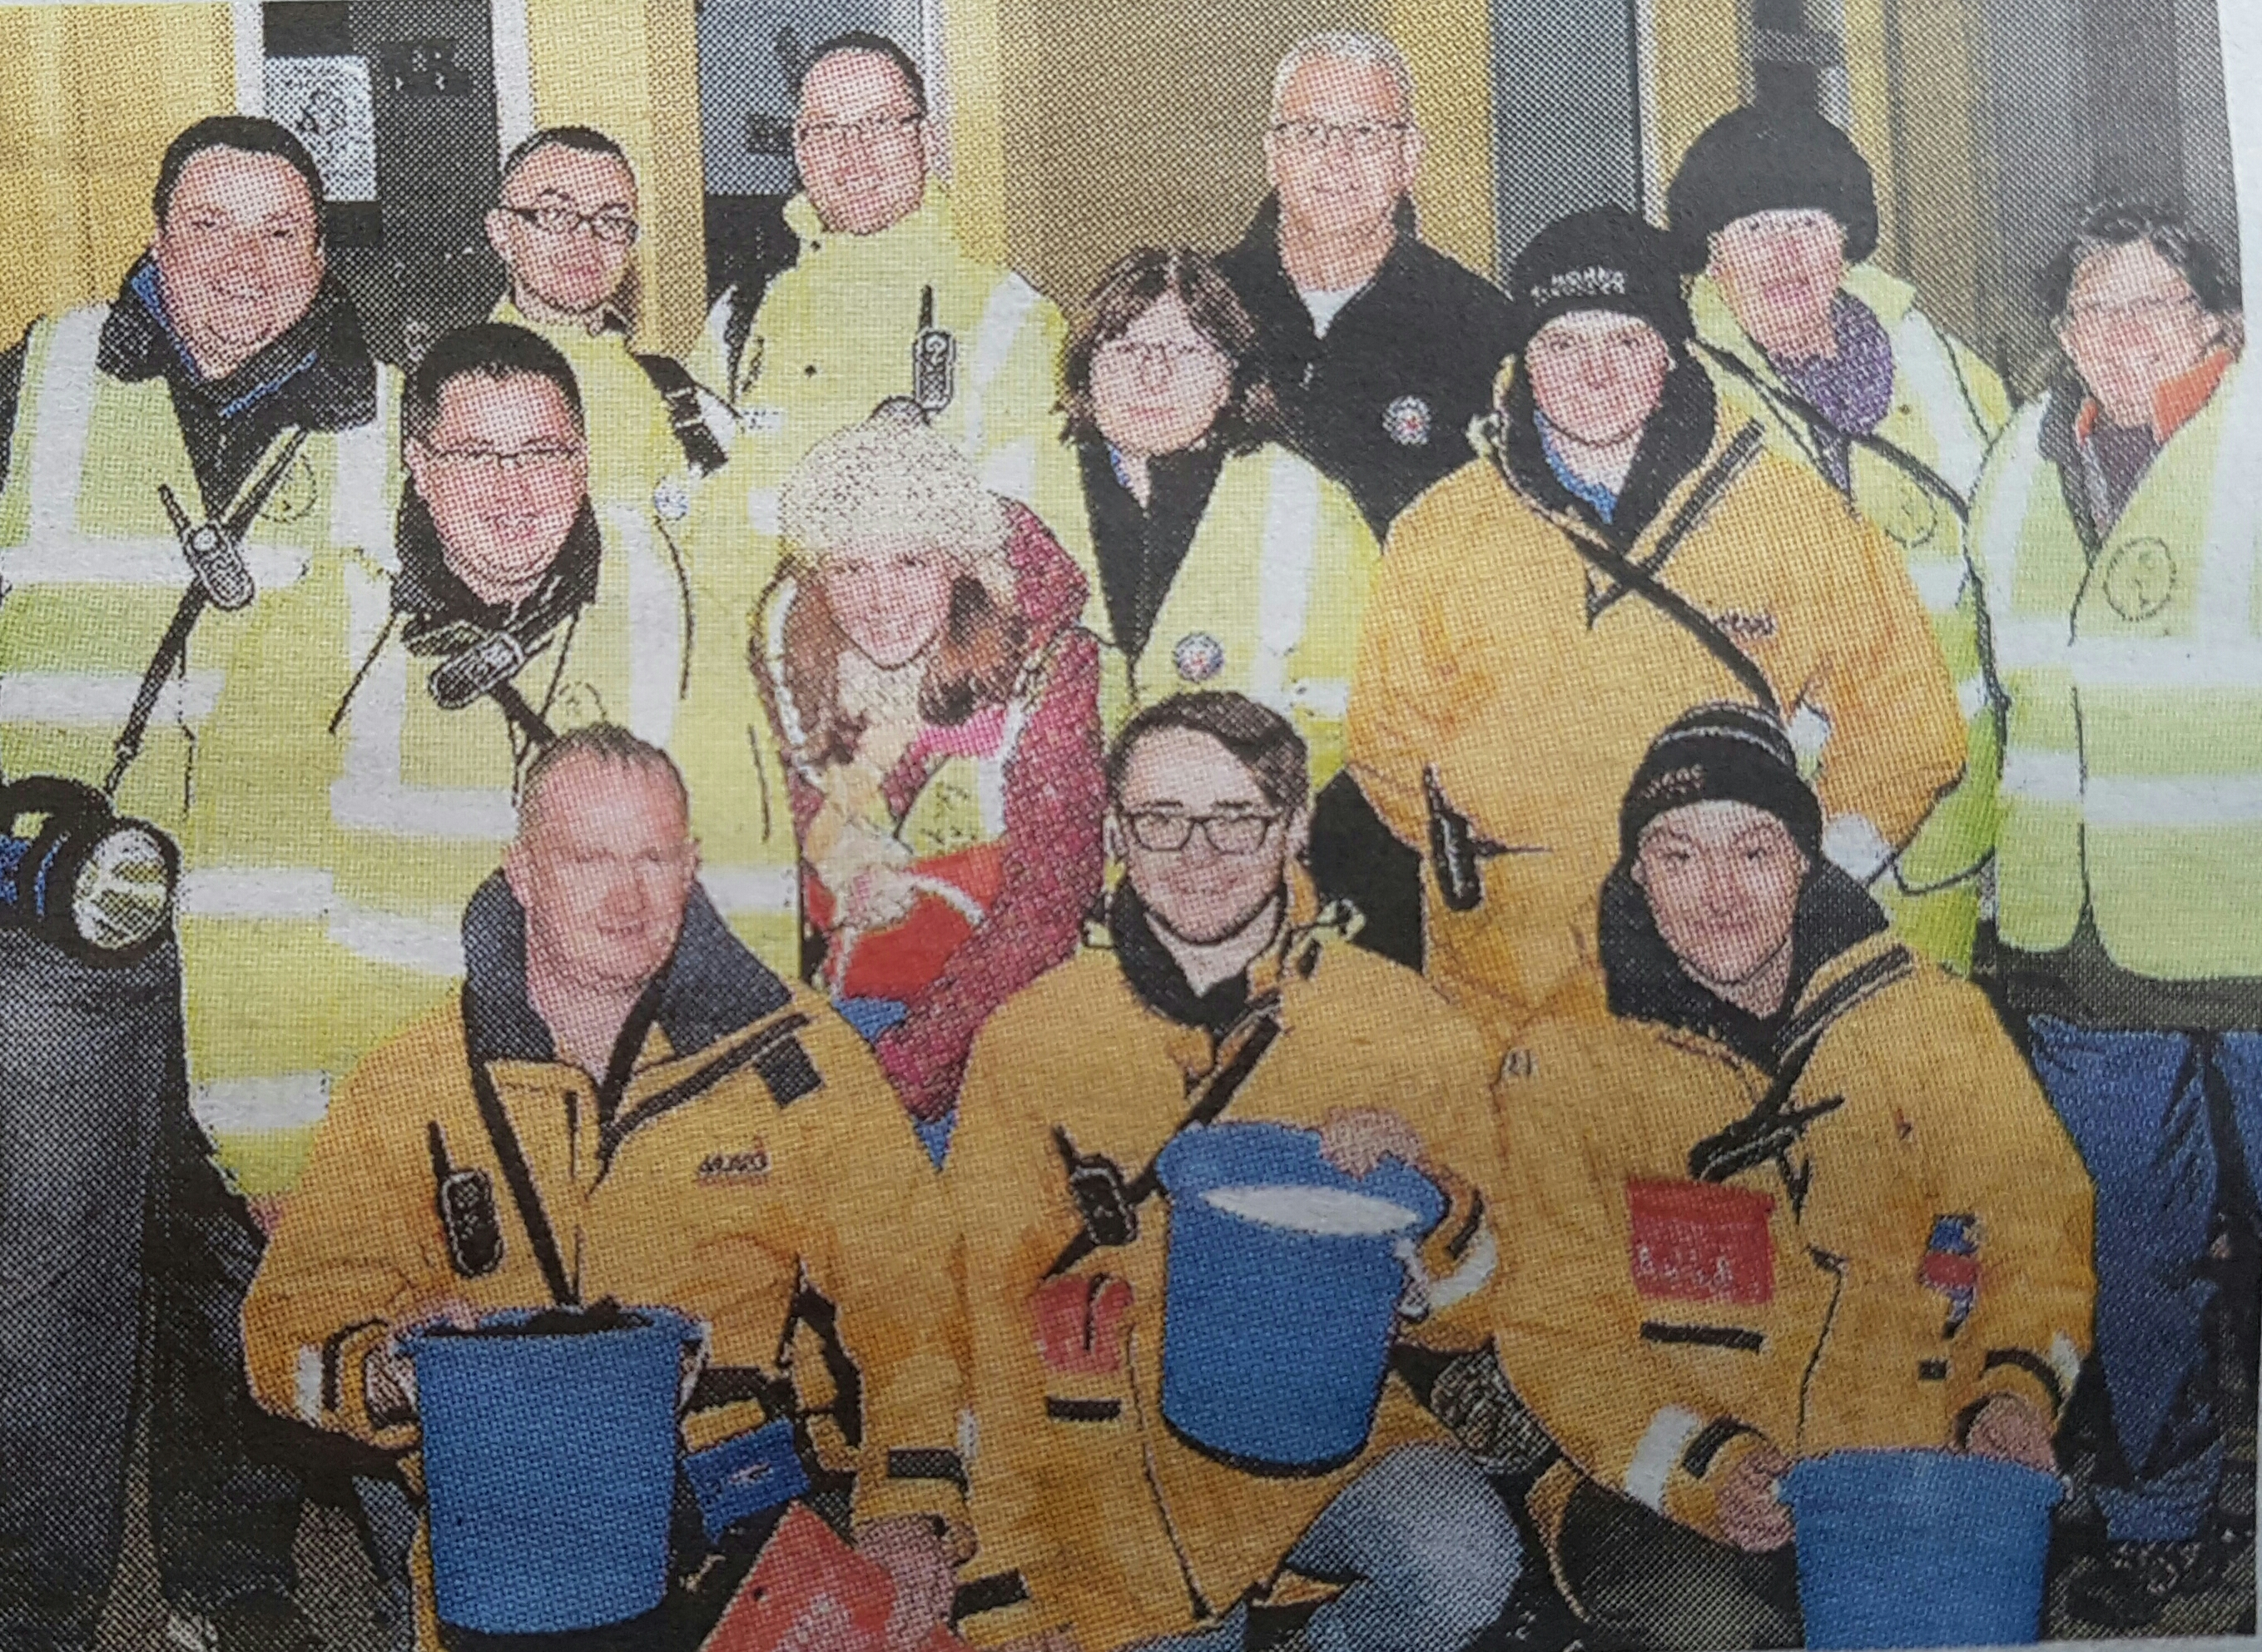 Pictured from local newspaper are some of our volunteer crew alongside other safety volunteers